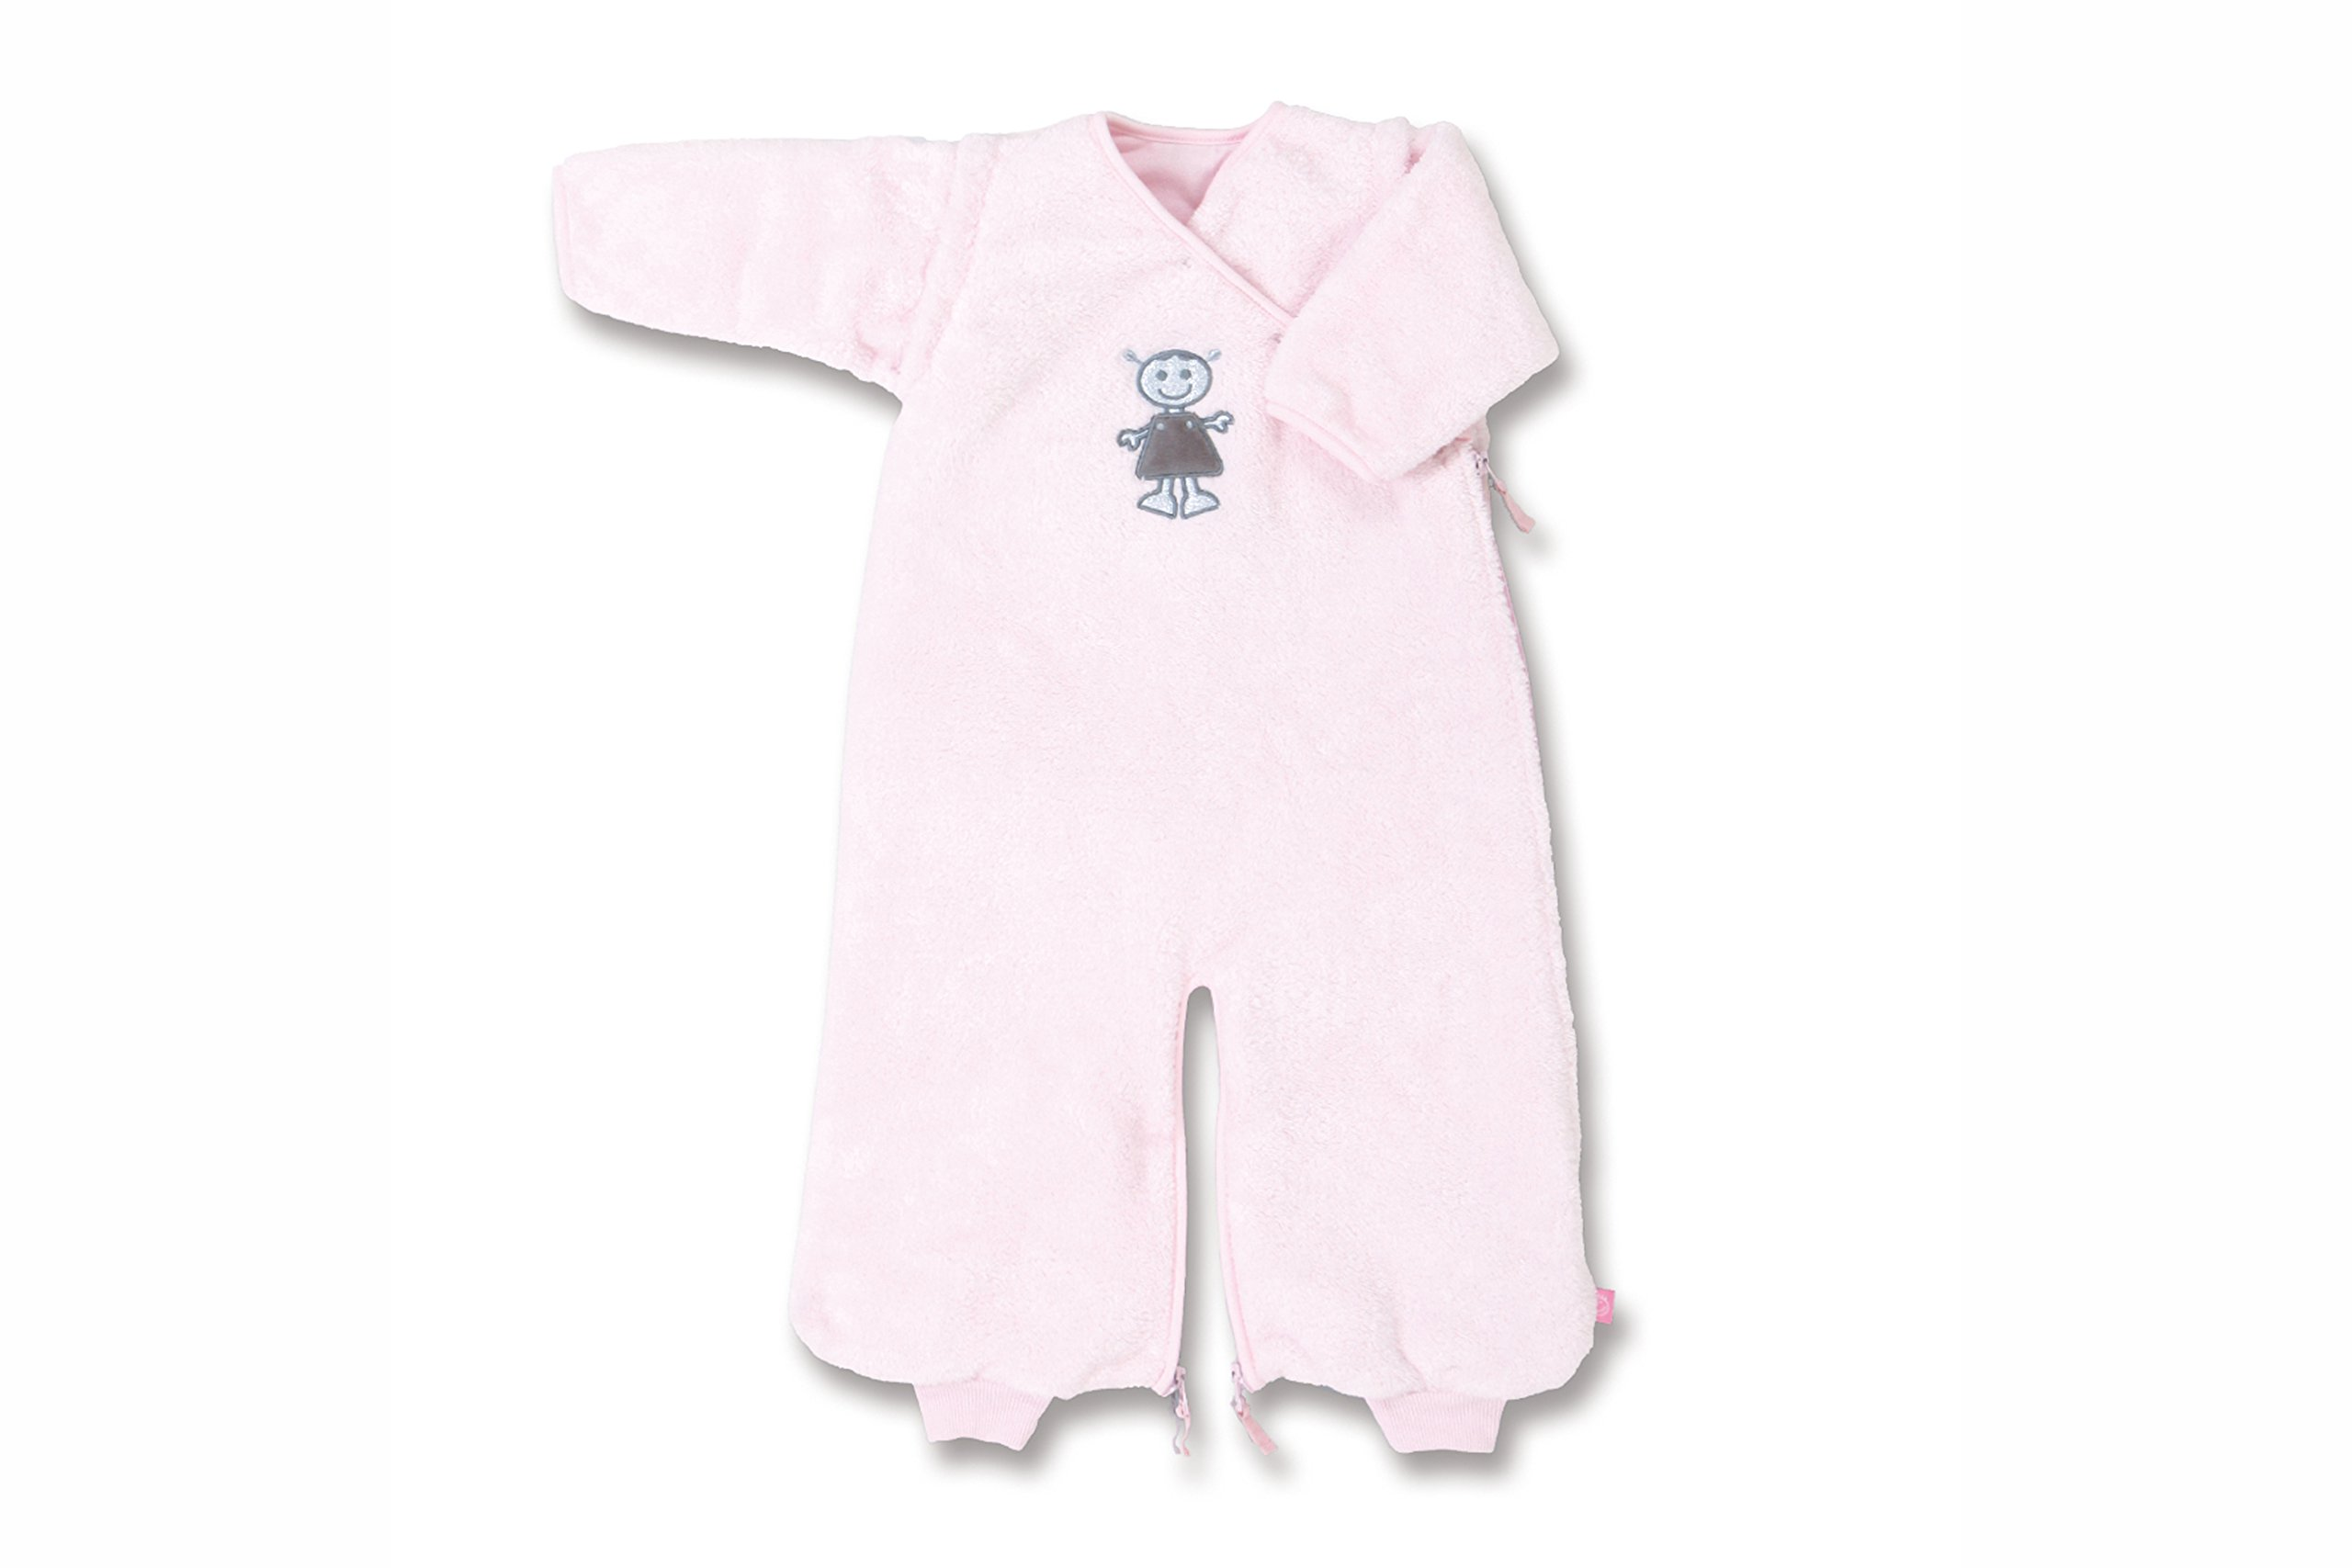 Baby Boum Softy Sleeping Bag (0-9 Months, Stany Cristal)